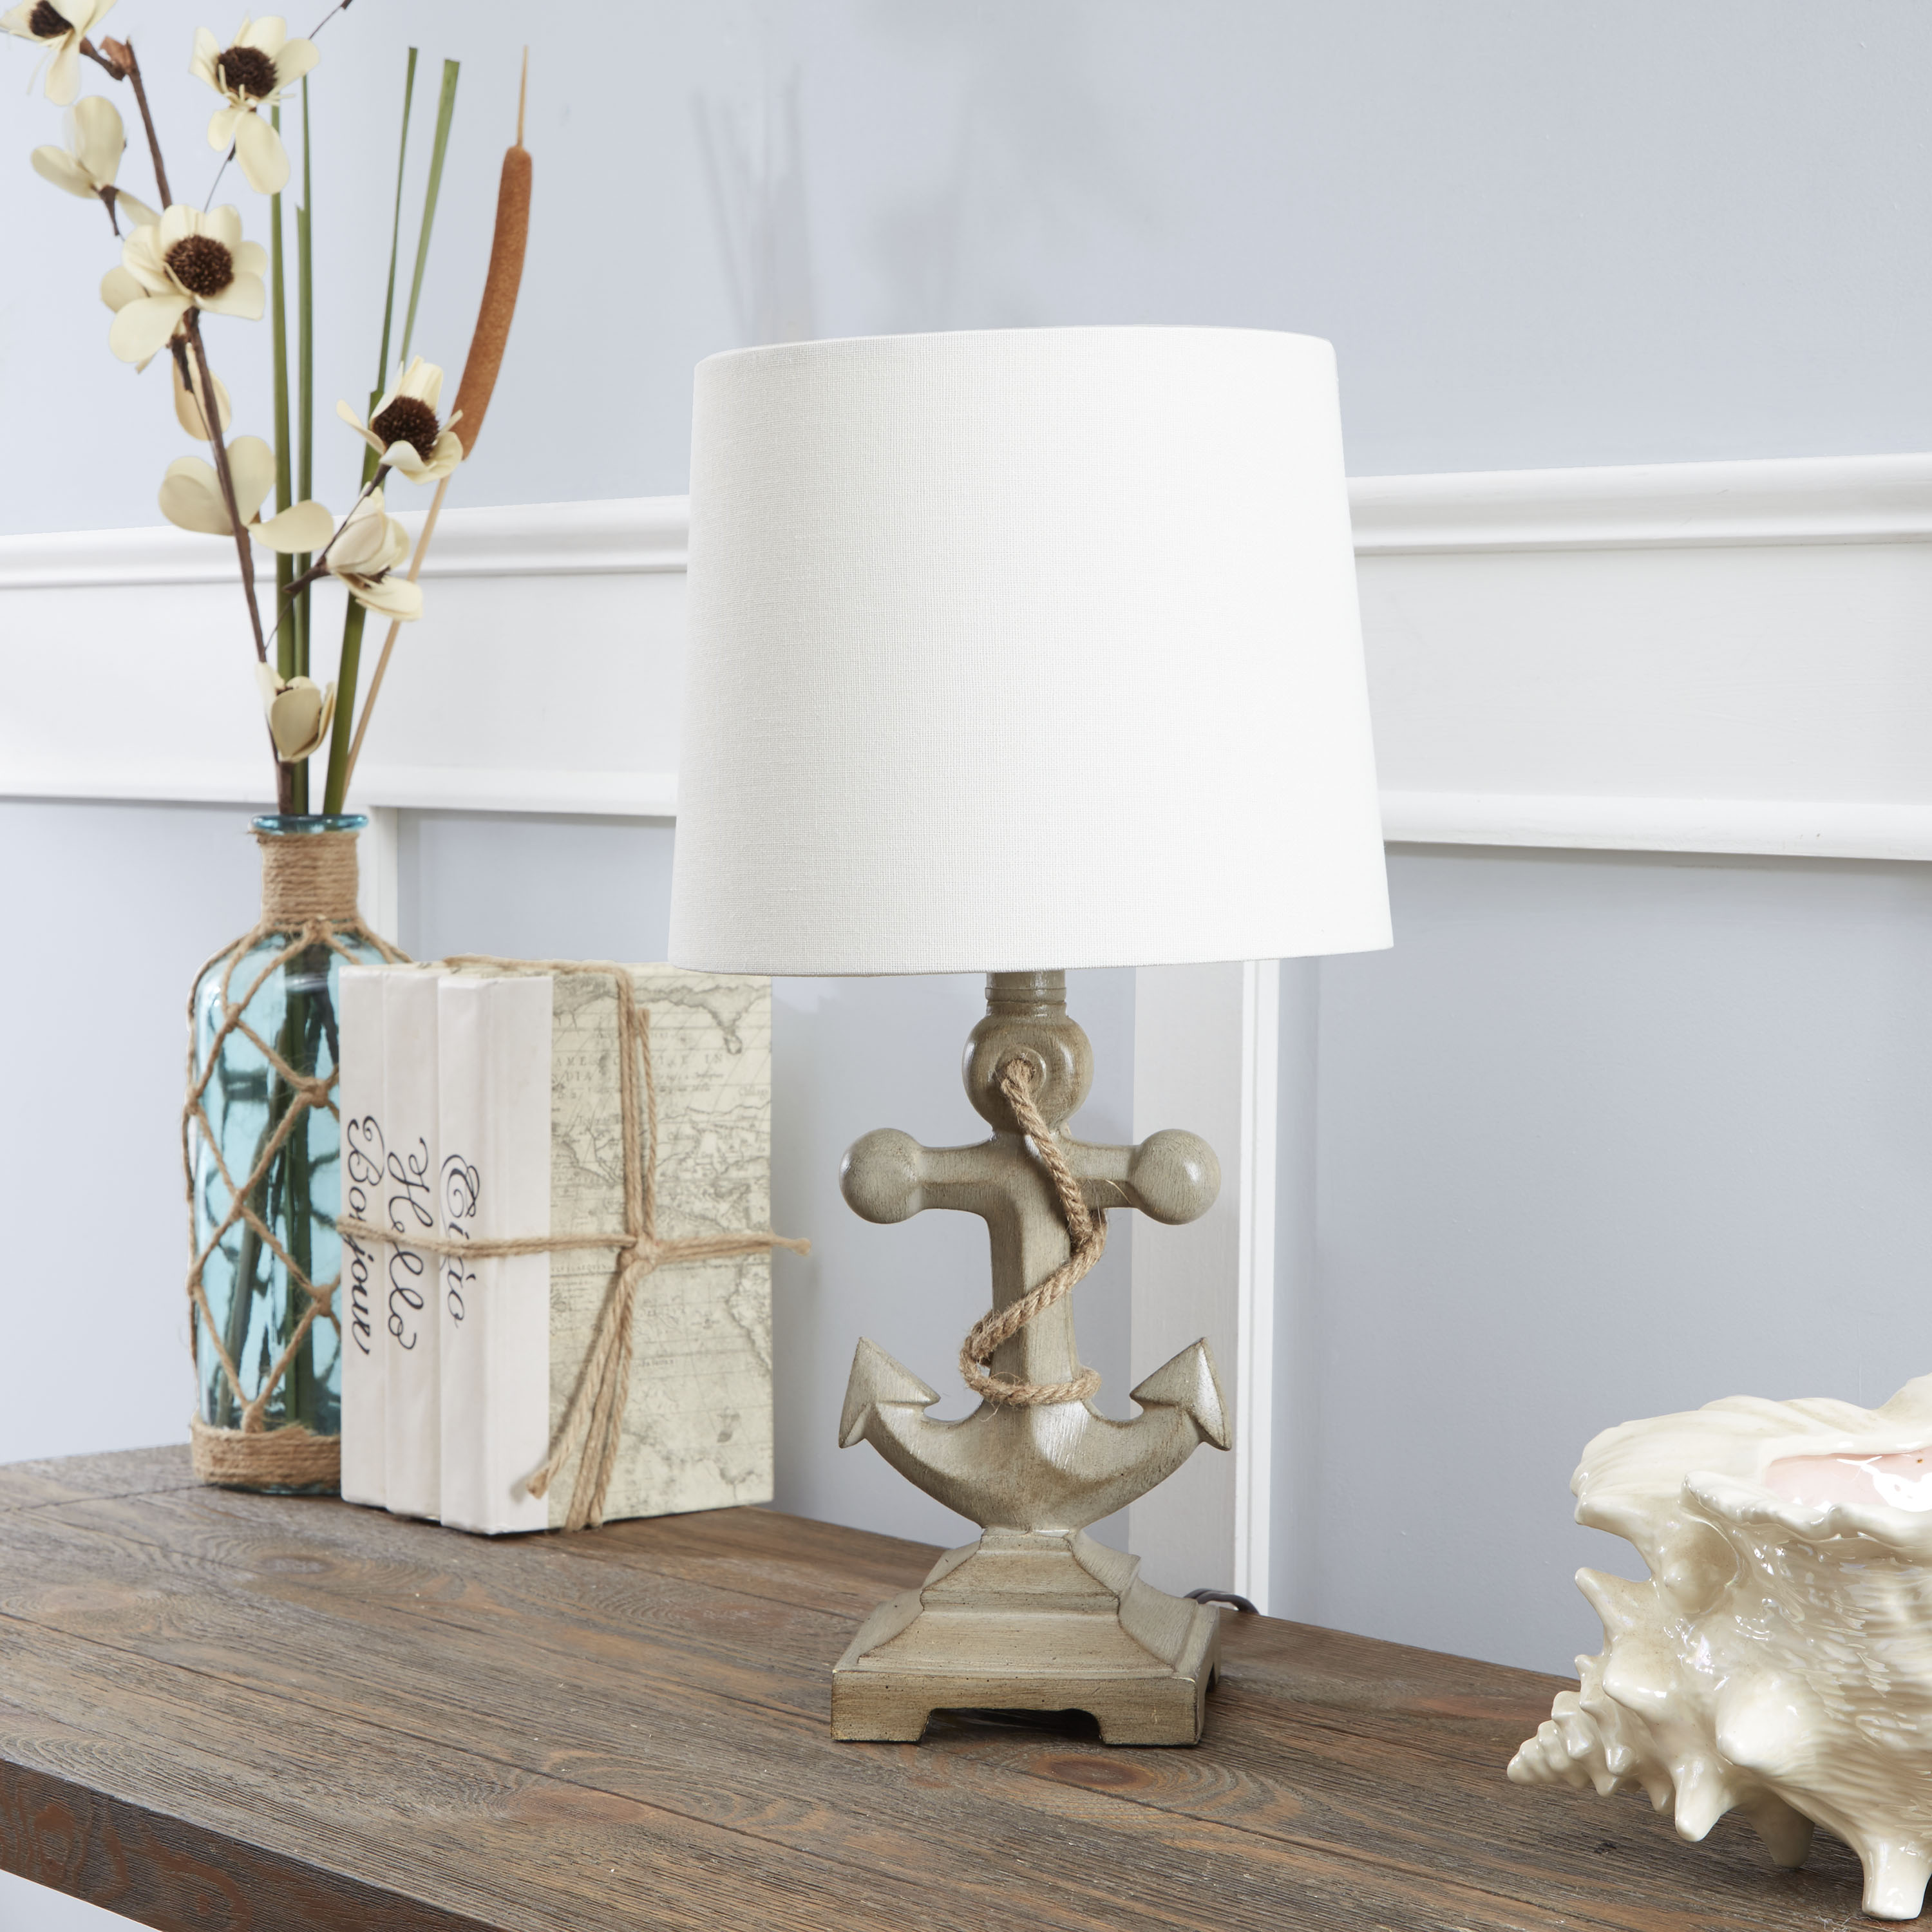 better homes and gardens anchor driftwood accent table lamp white round metal side pub height chairs contemporary lighting nate berkus marble silver bedroom lamps console half